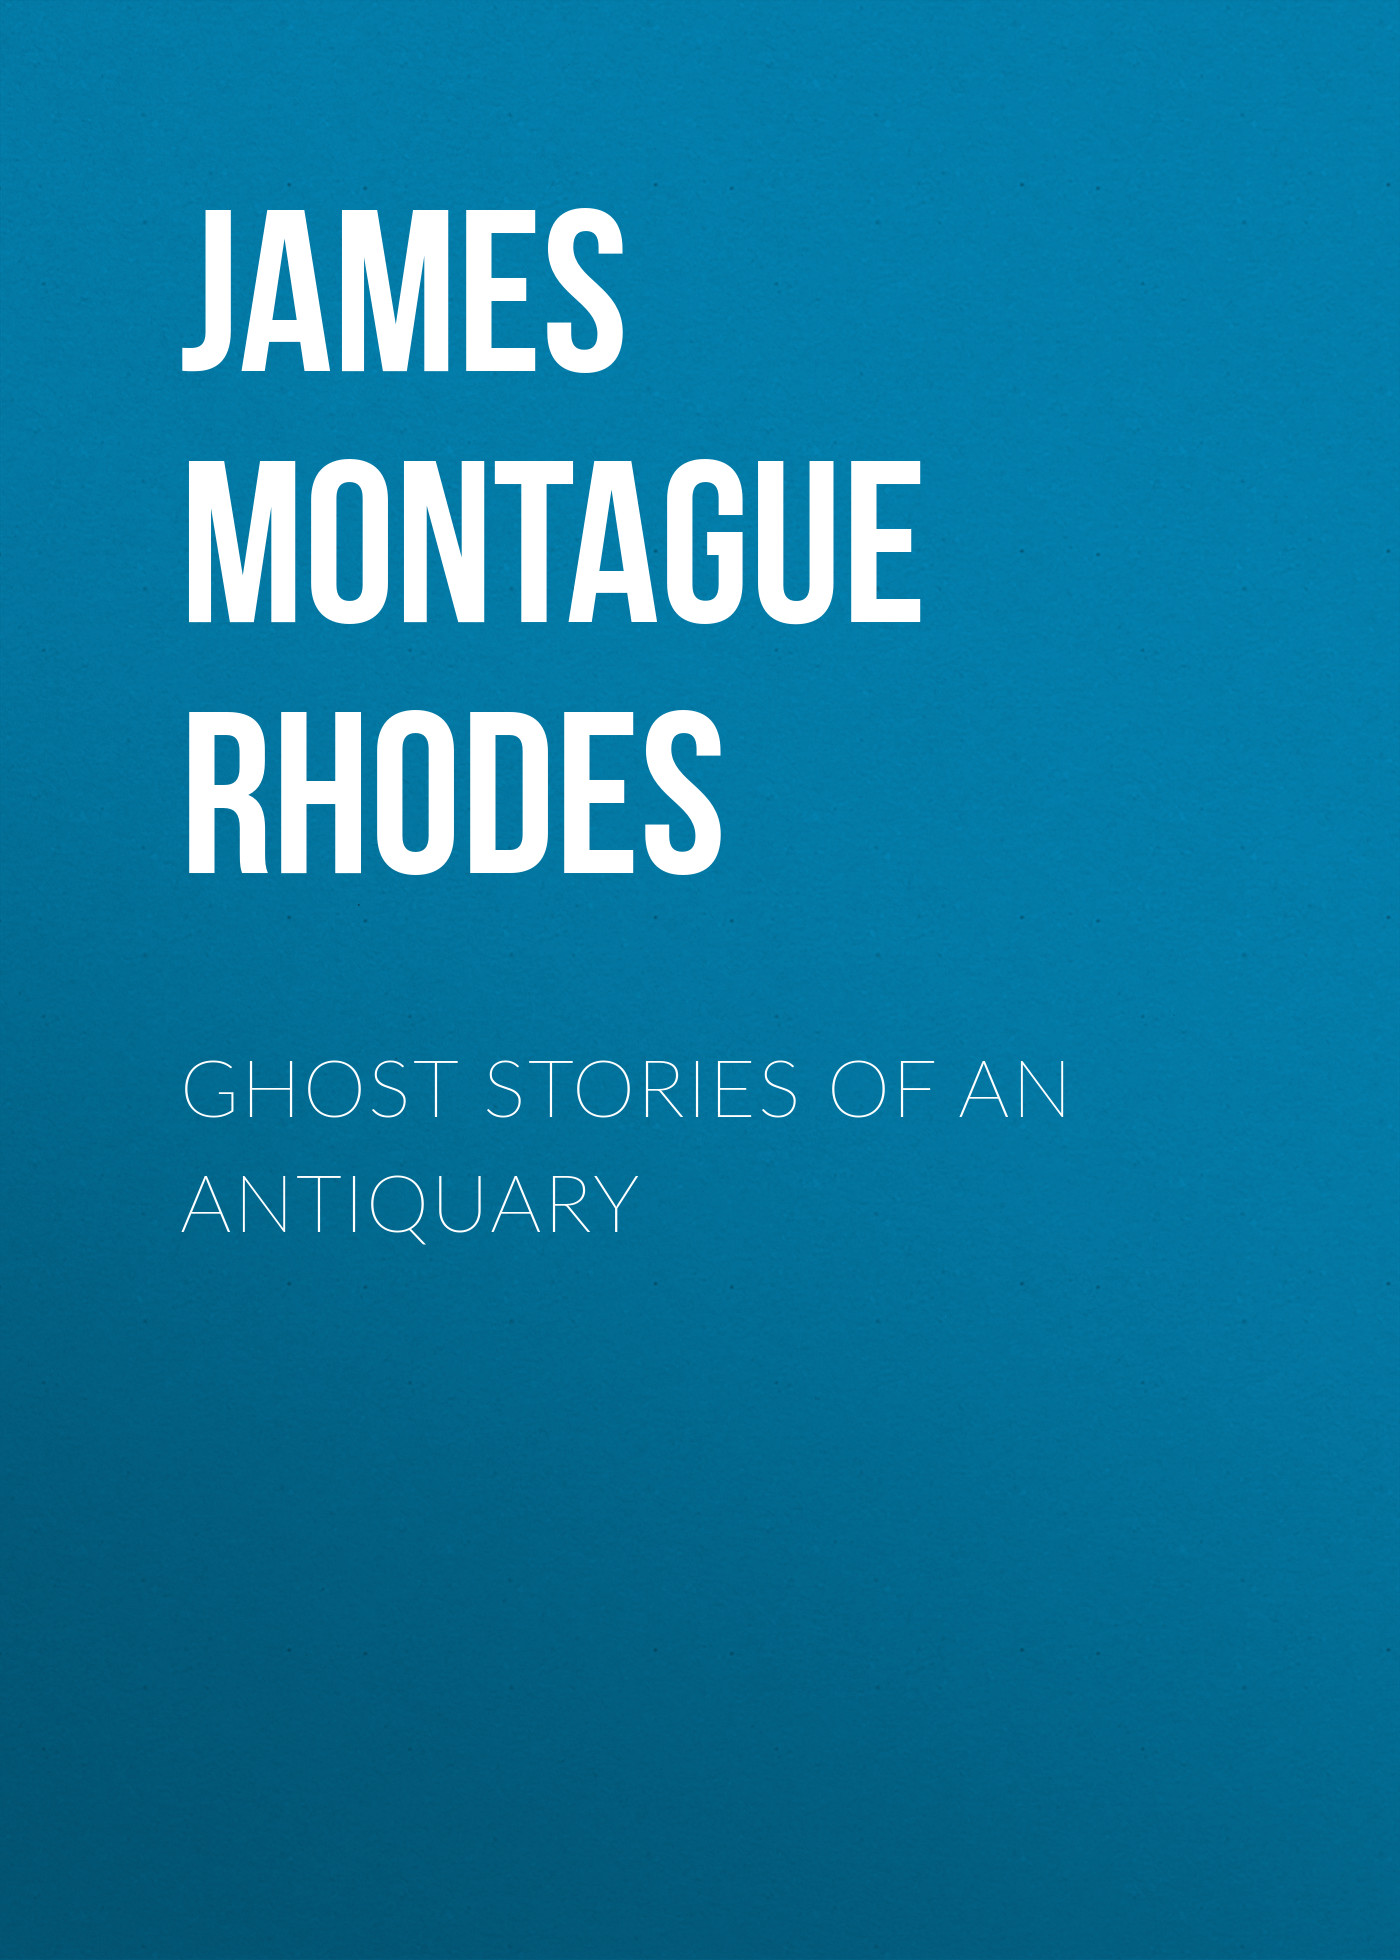 лучшая цена James Montague Rhodes Ghost Stories of an Antiquary